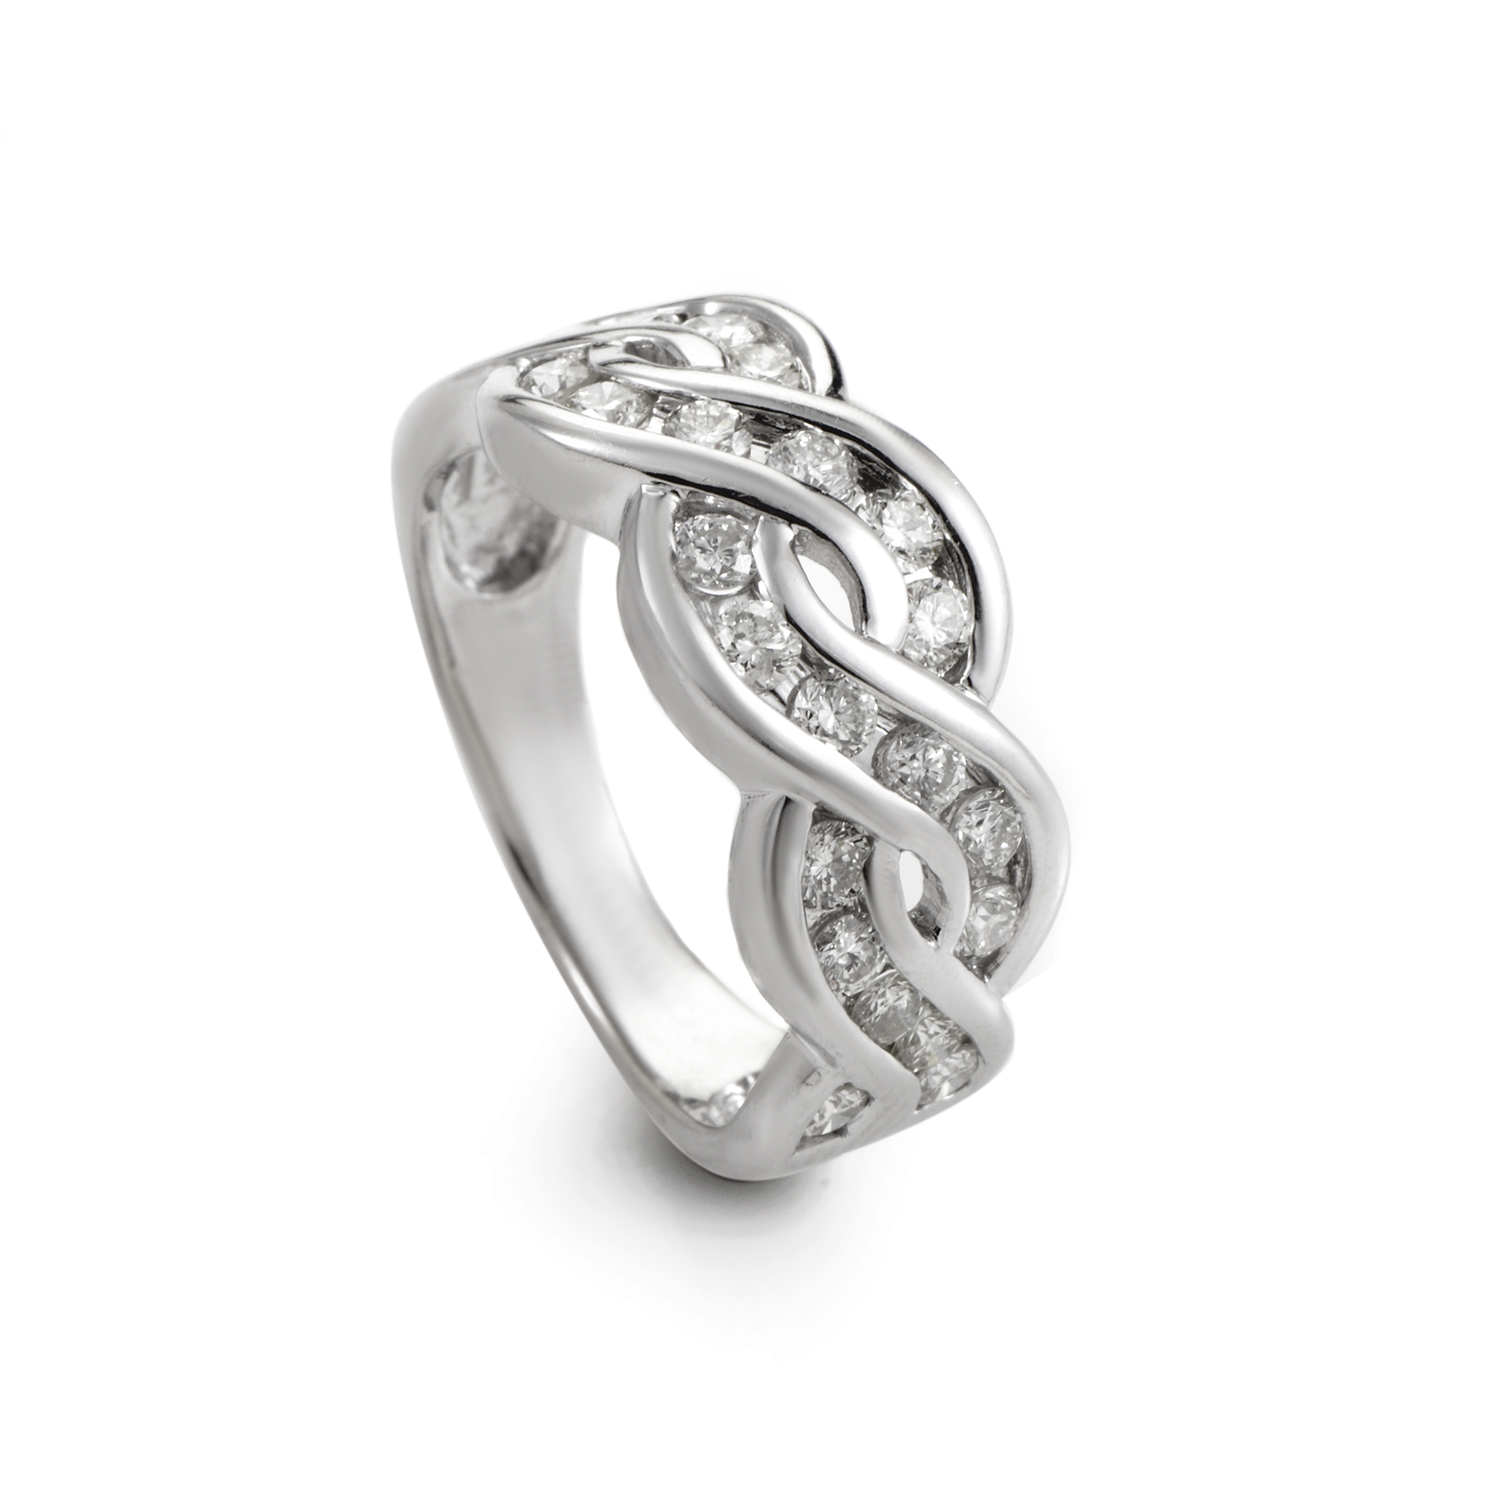 14K White Gold Wavy Diamond Band Ring RM7572W